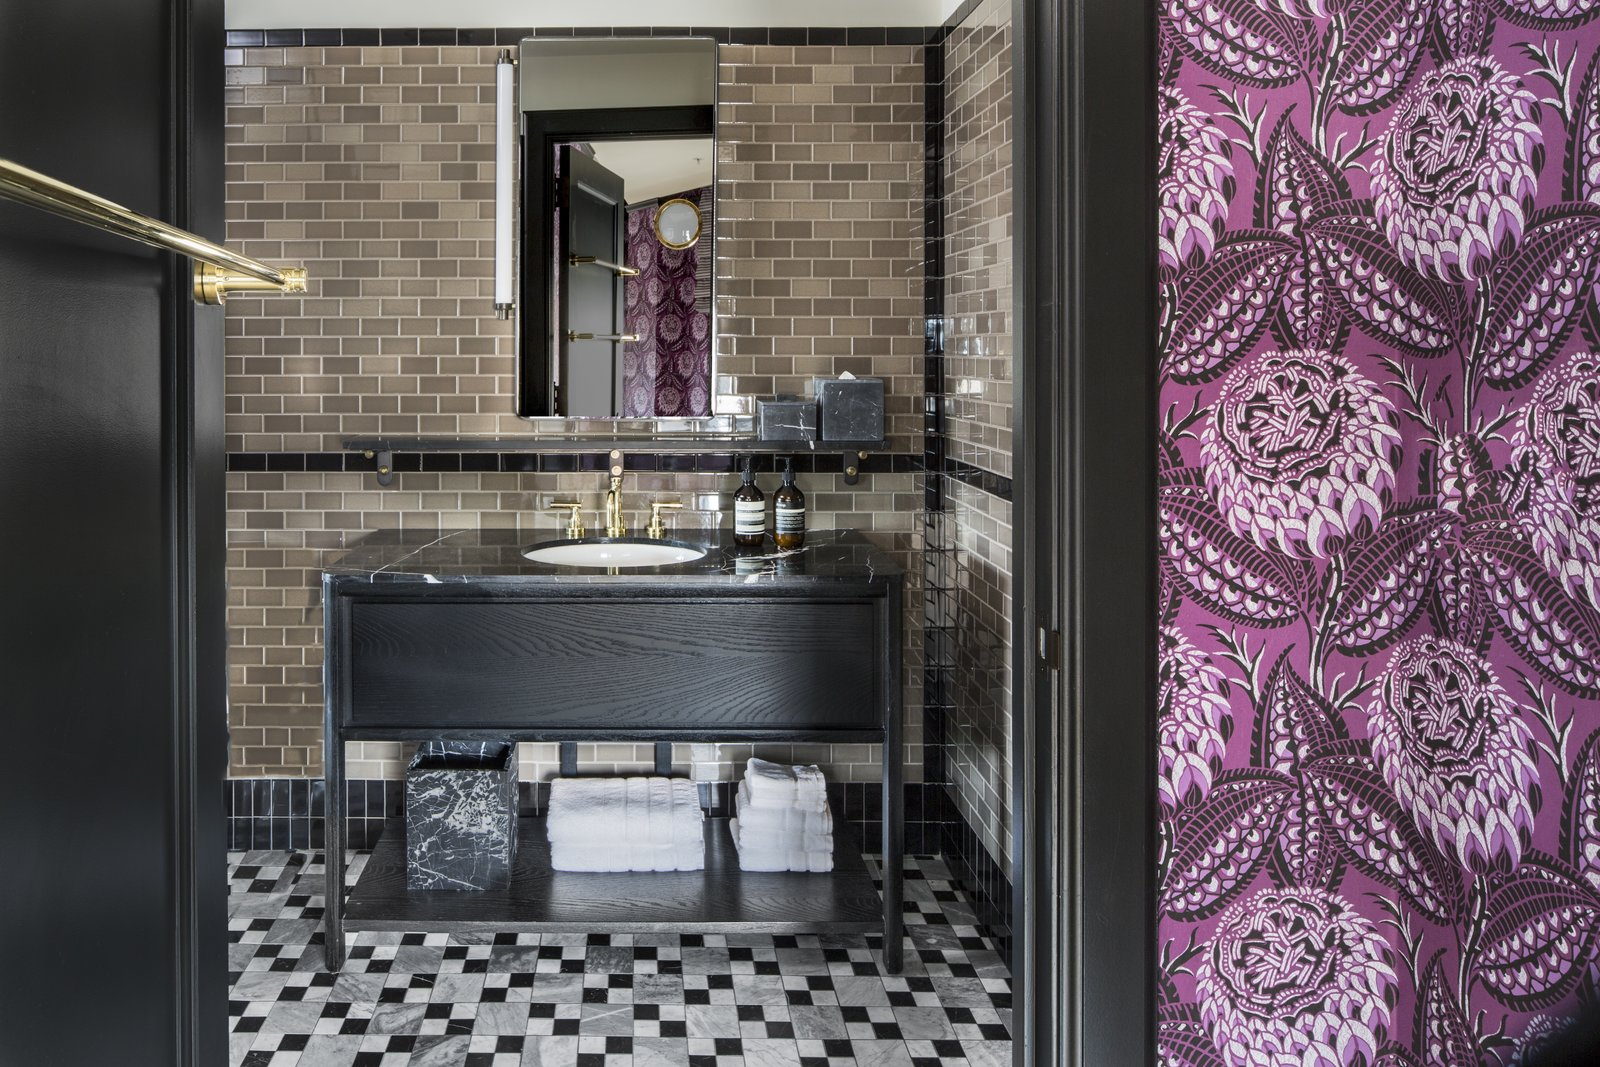 Bath Room and Undermount Sink For contrast, different colored tiles have been integrated in the bathroom floor and walls.  Photo 9 of 12 in Old-World Charm Mixes With Bohemian Style in This New Boutique Hotel